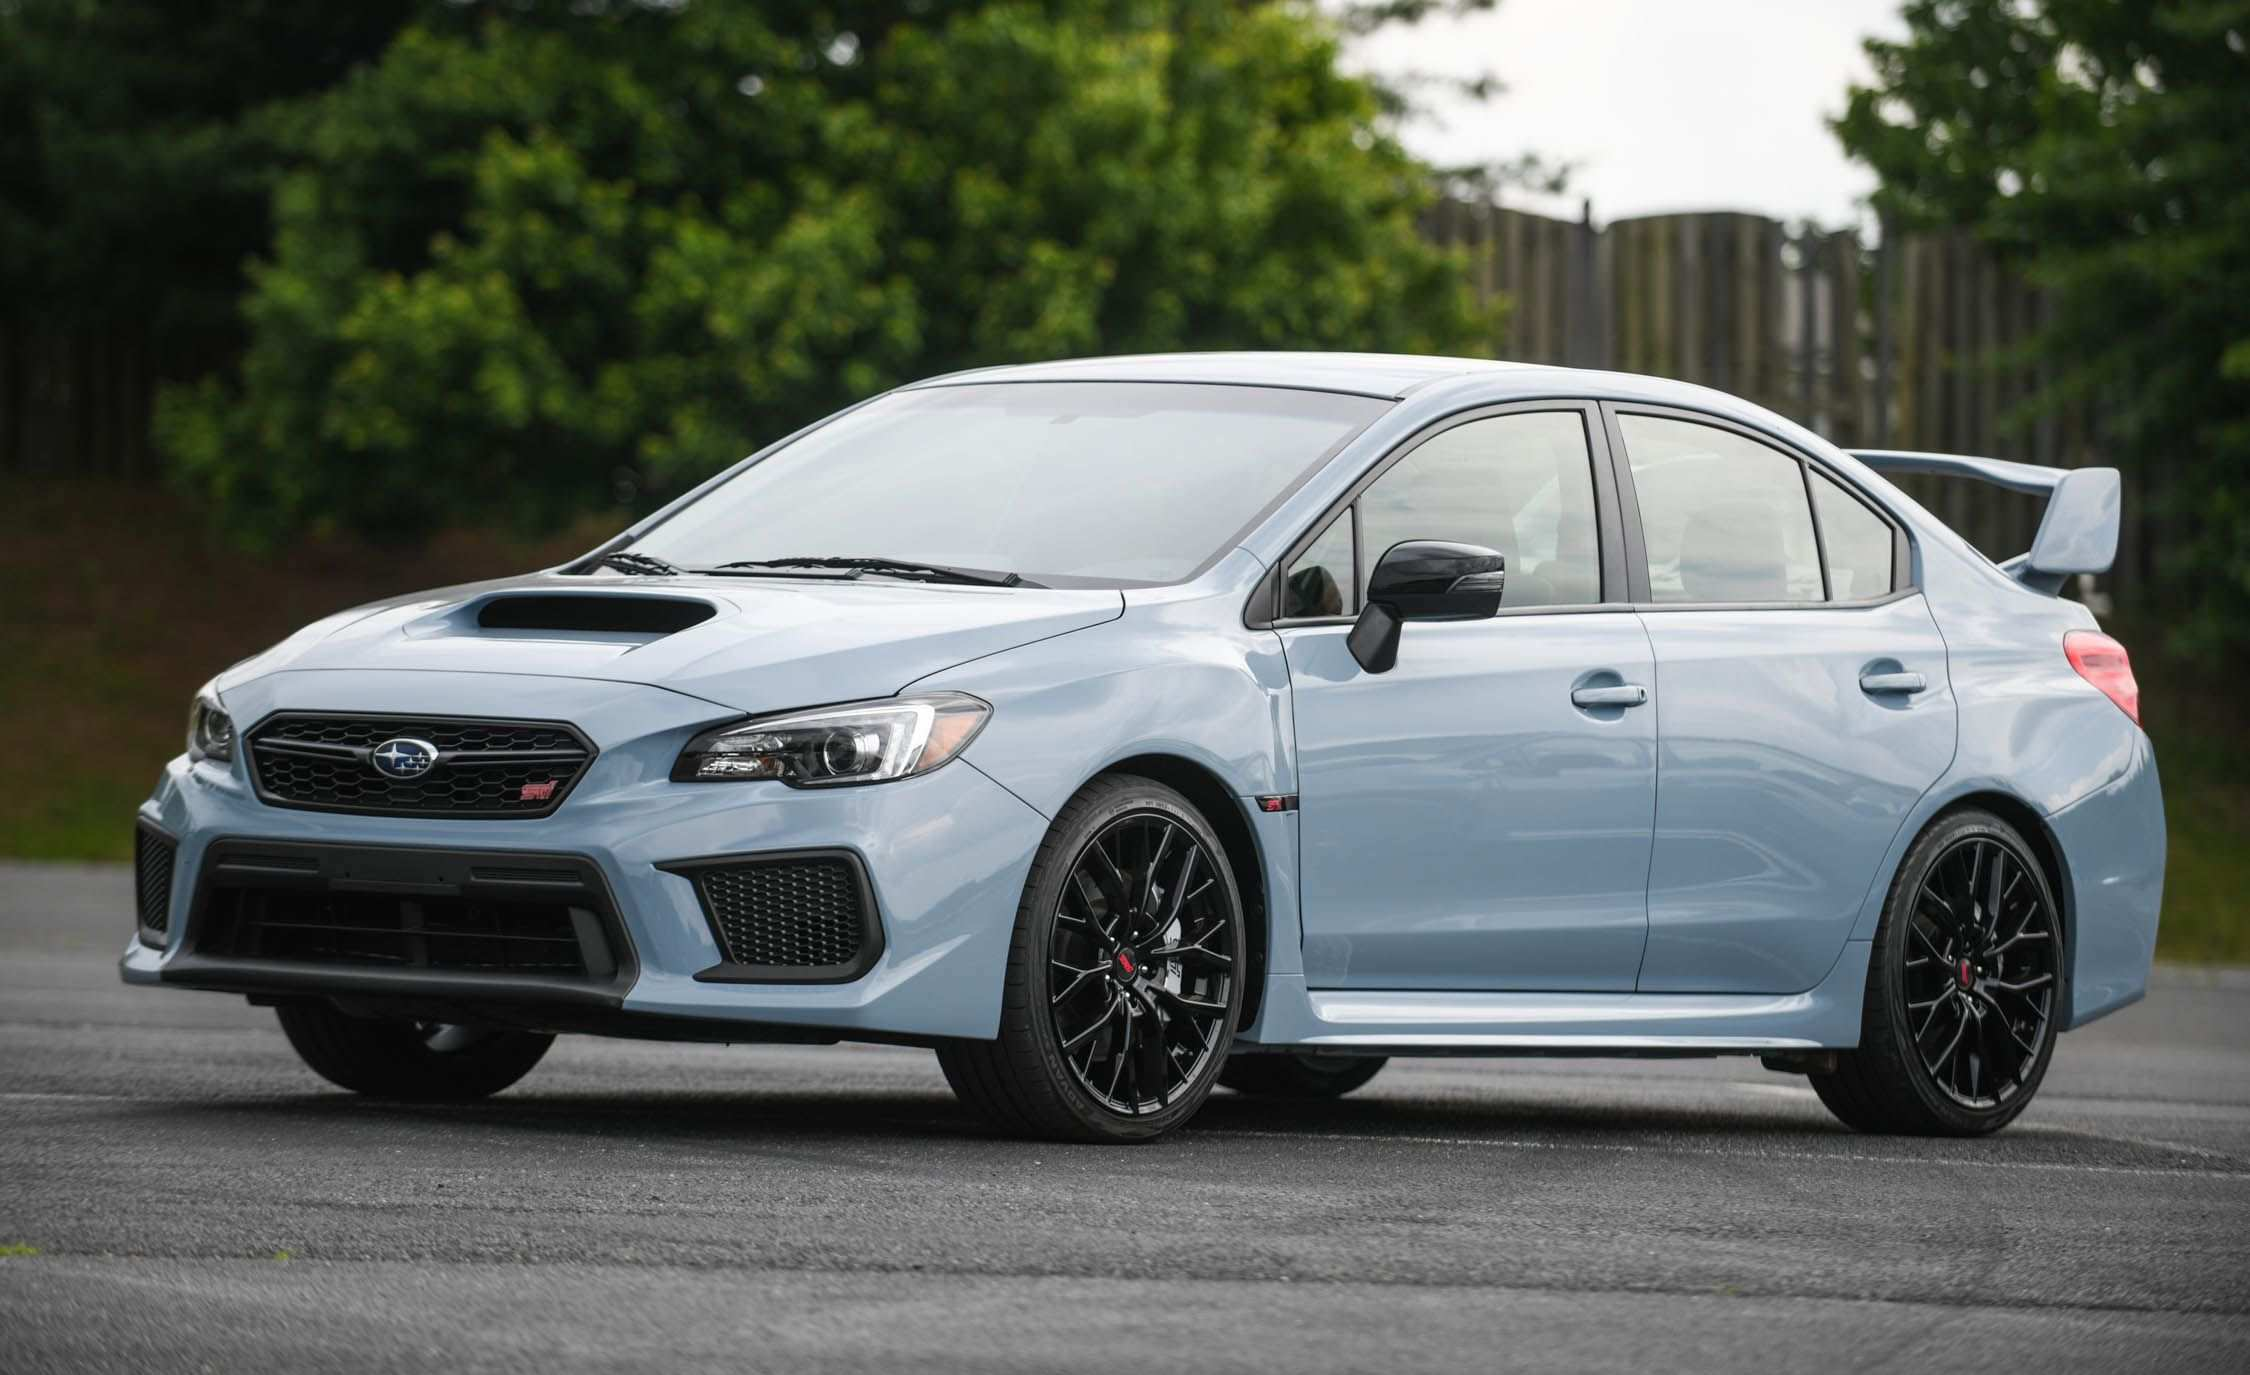 75 The 2019 Subaru Wrx Hatchback Exterior and Interior by 2019 Subaru Wrx Hatchback